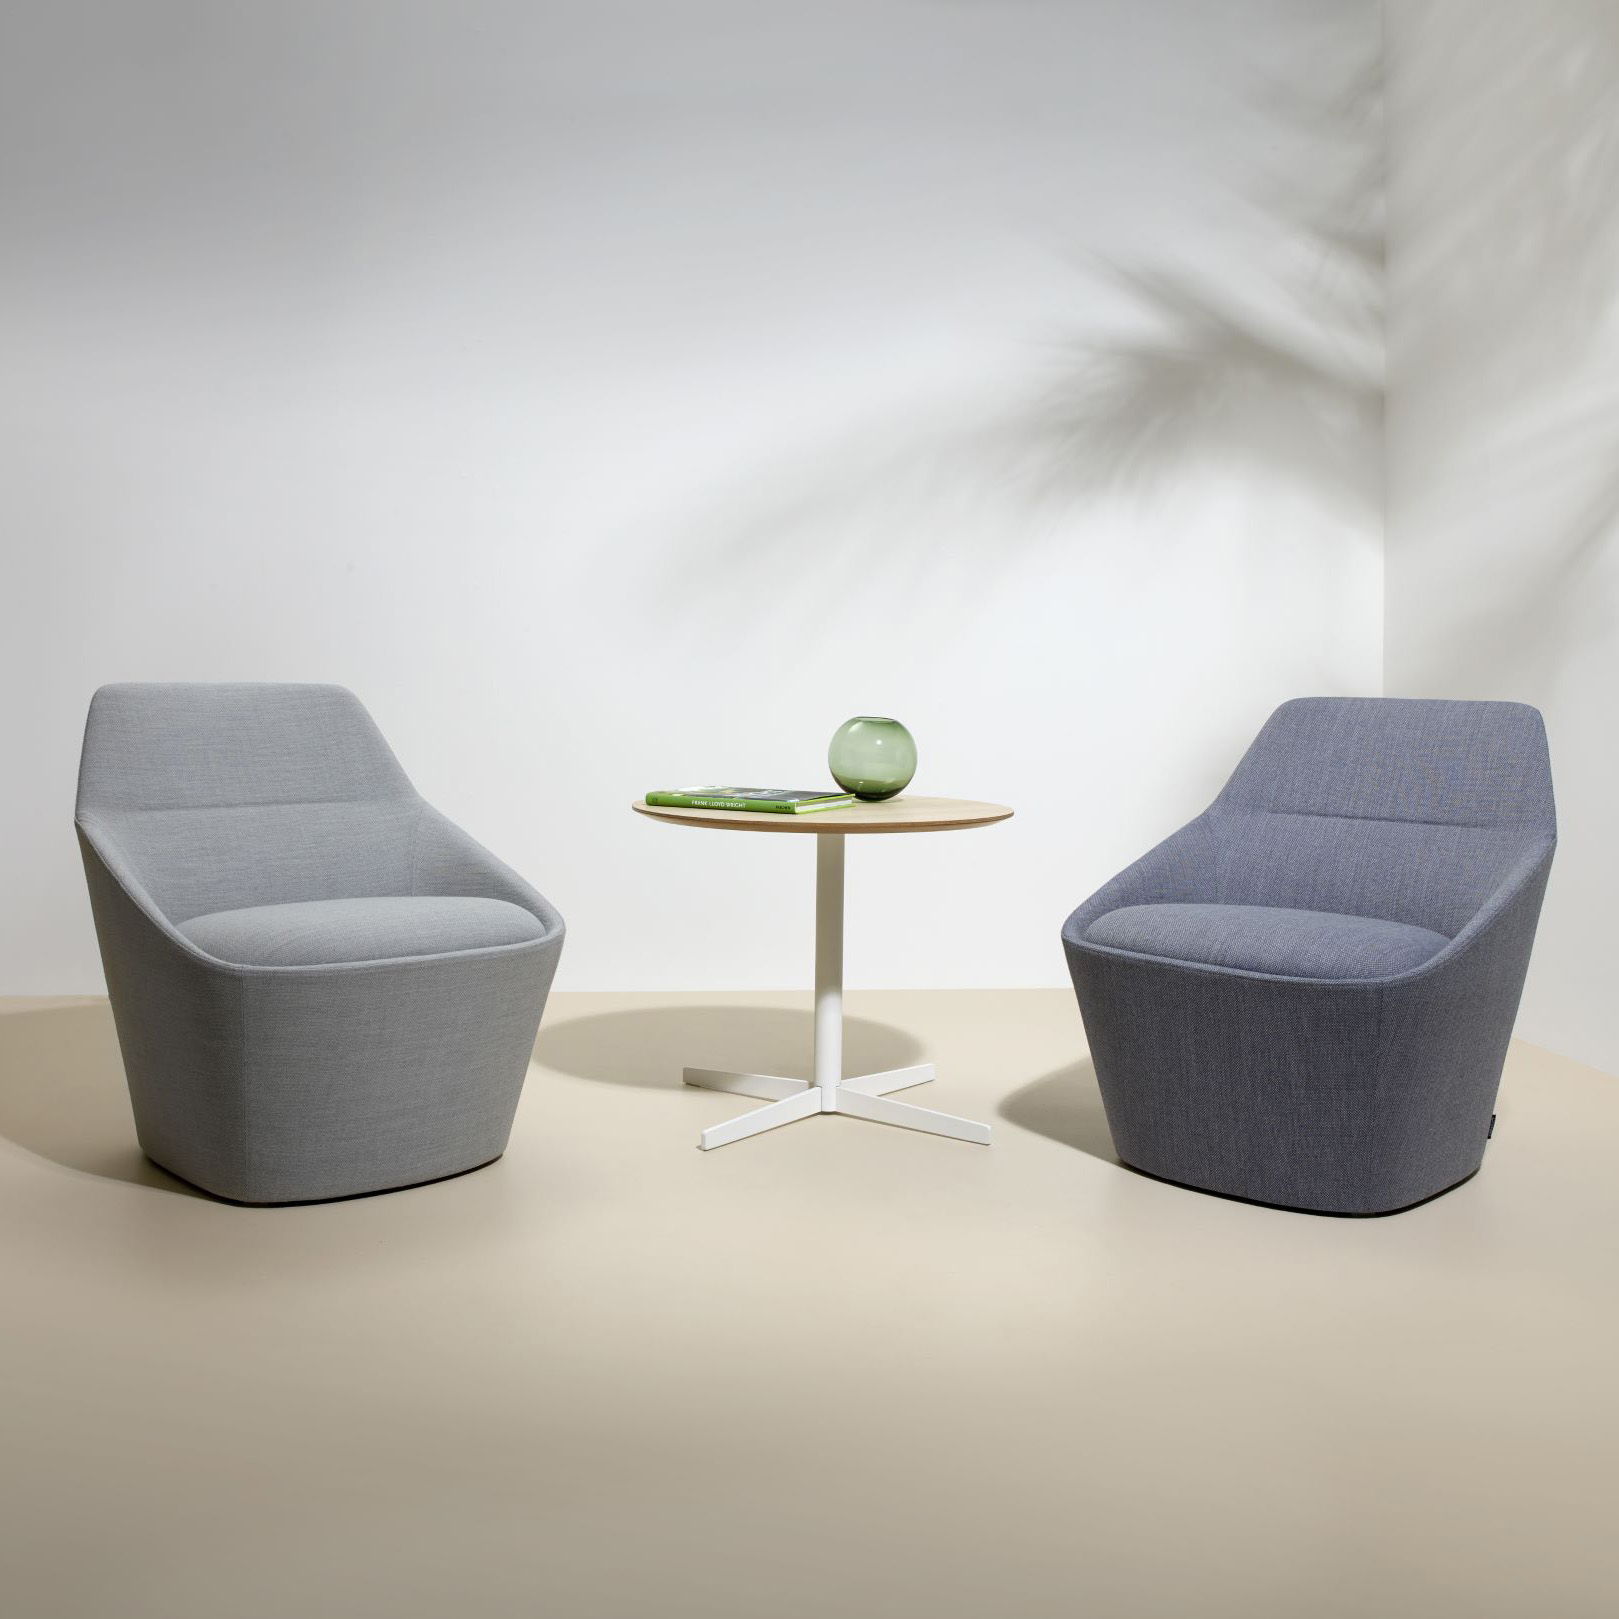 Ezy Large Easy Chair Furniture By Christophe Pillet